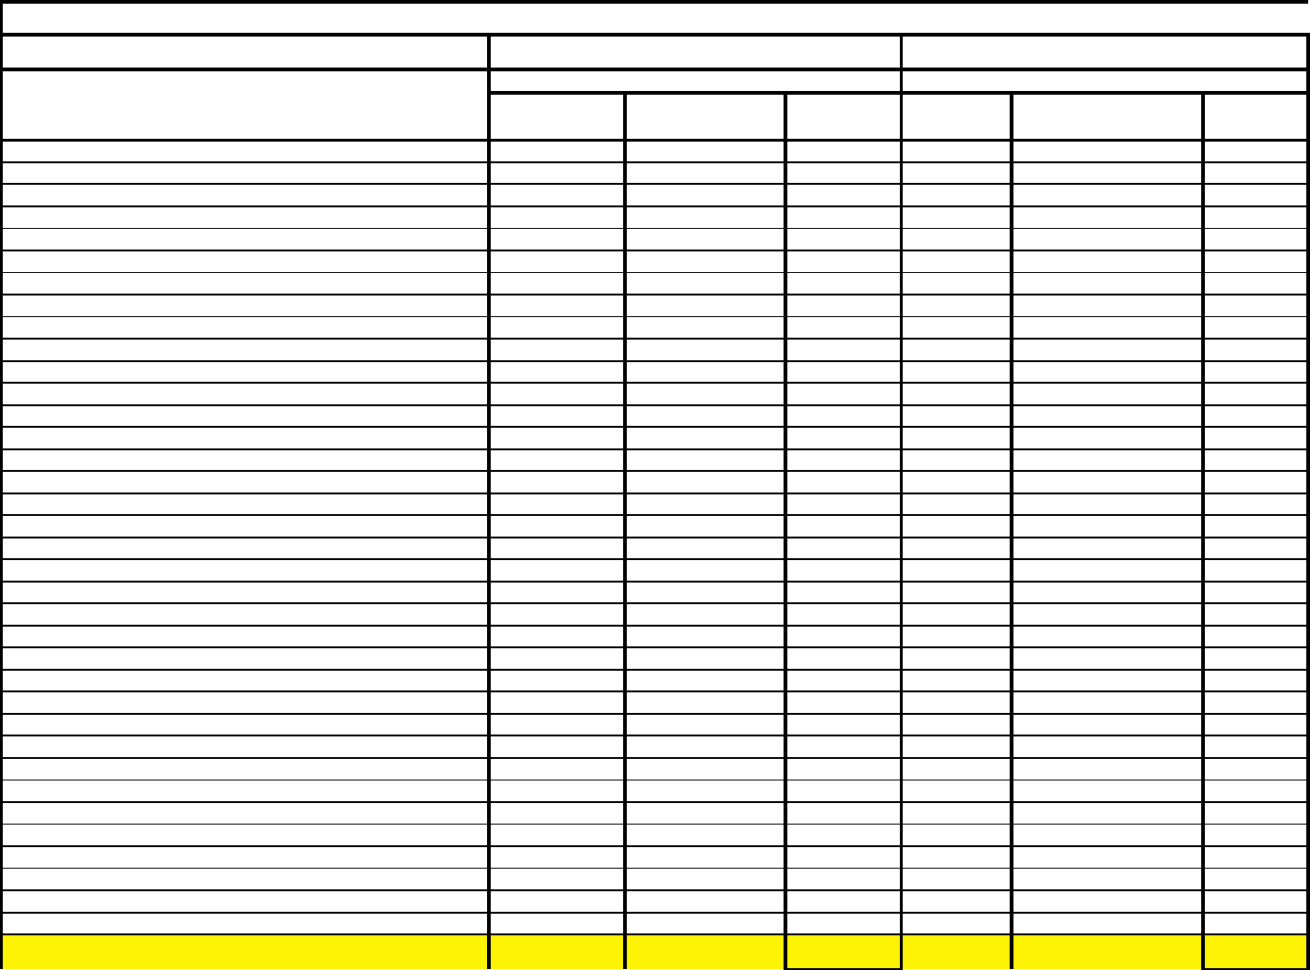 Costing Spreadsheet Template Costing Spreadsheet Cost